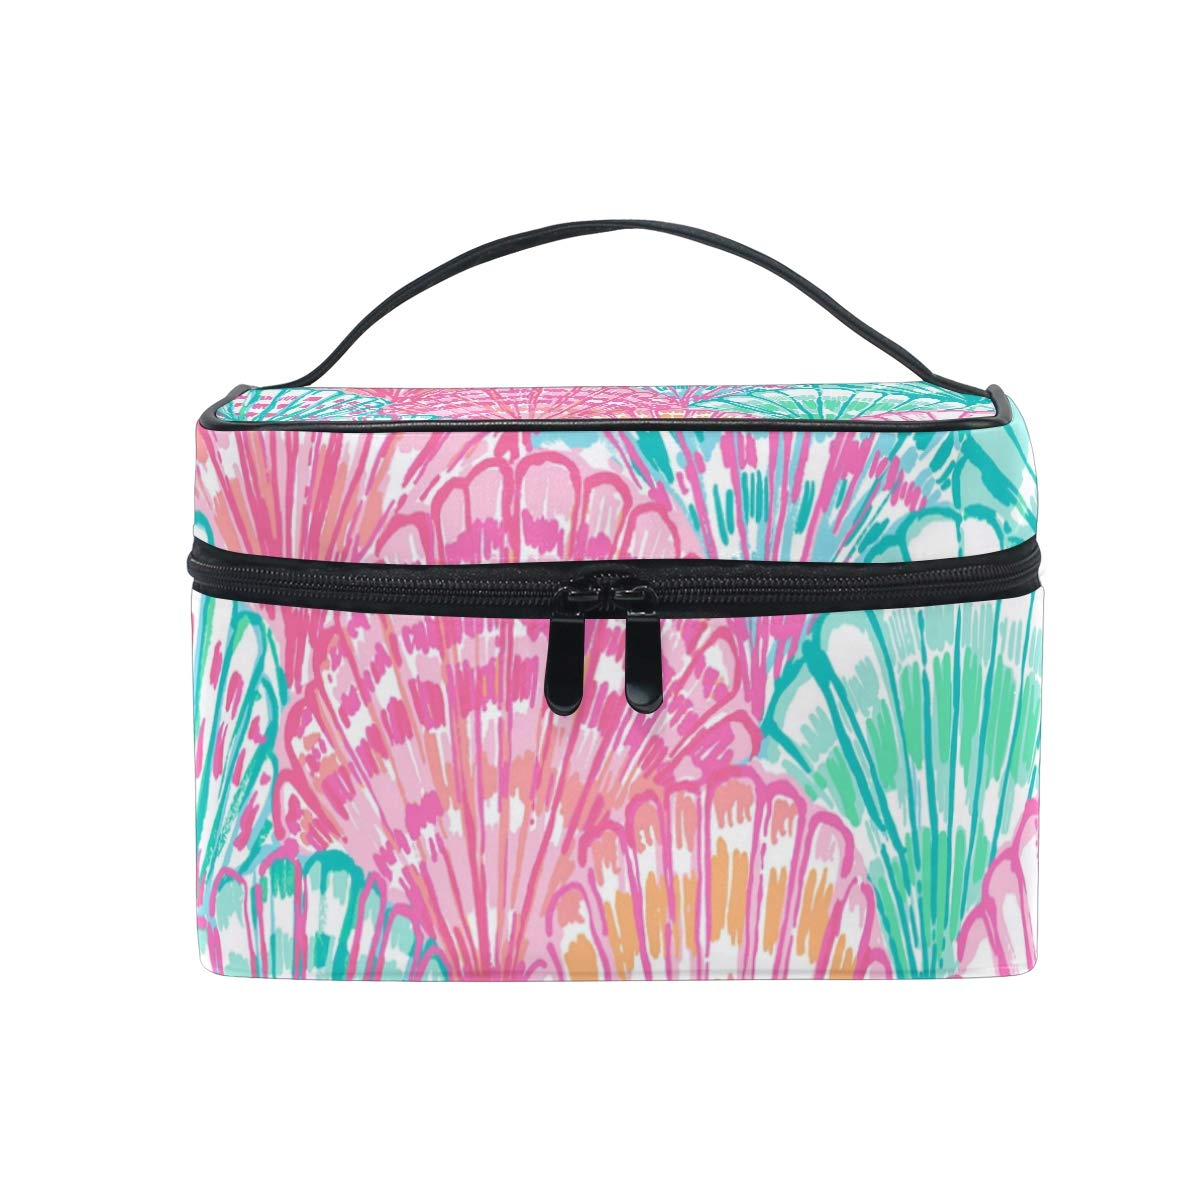 Portable Lily Flower Travel Cosmetic Bag Makeup Bag Makeup Case Organizer Train Case Toiletry Bag with Large Capacity for Cosmetics Make Up Tools